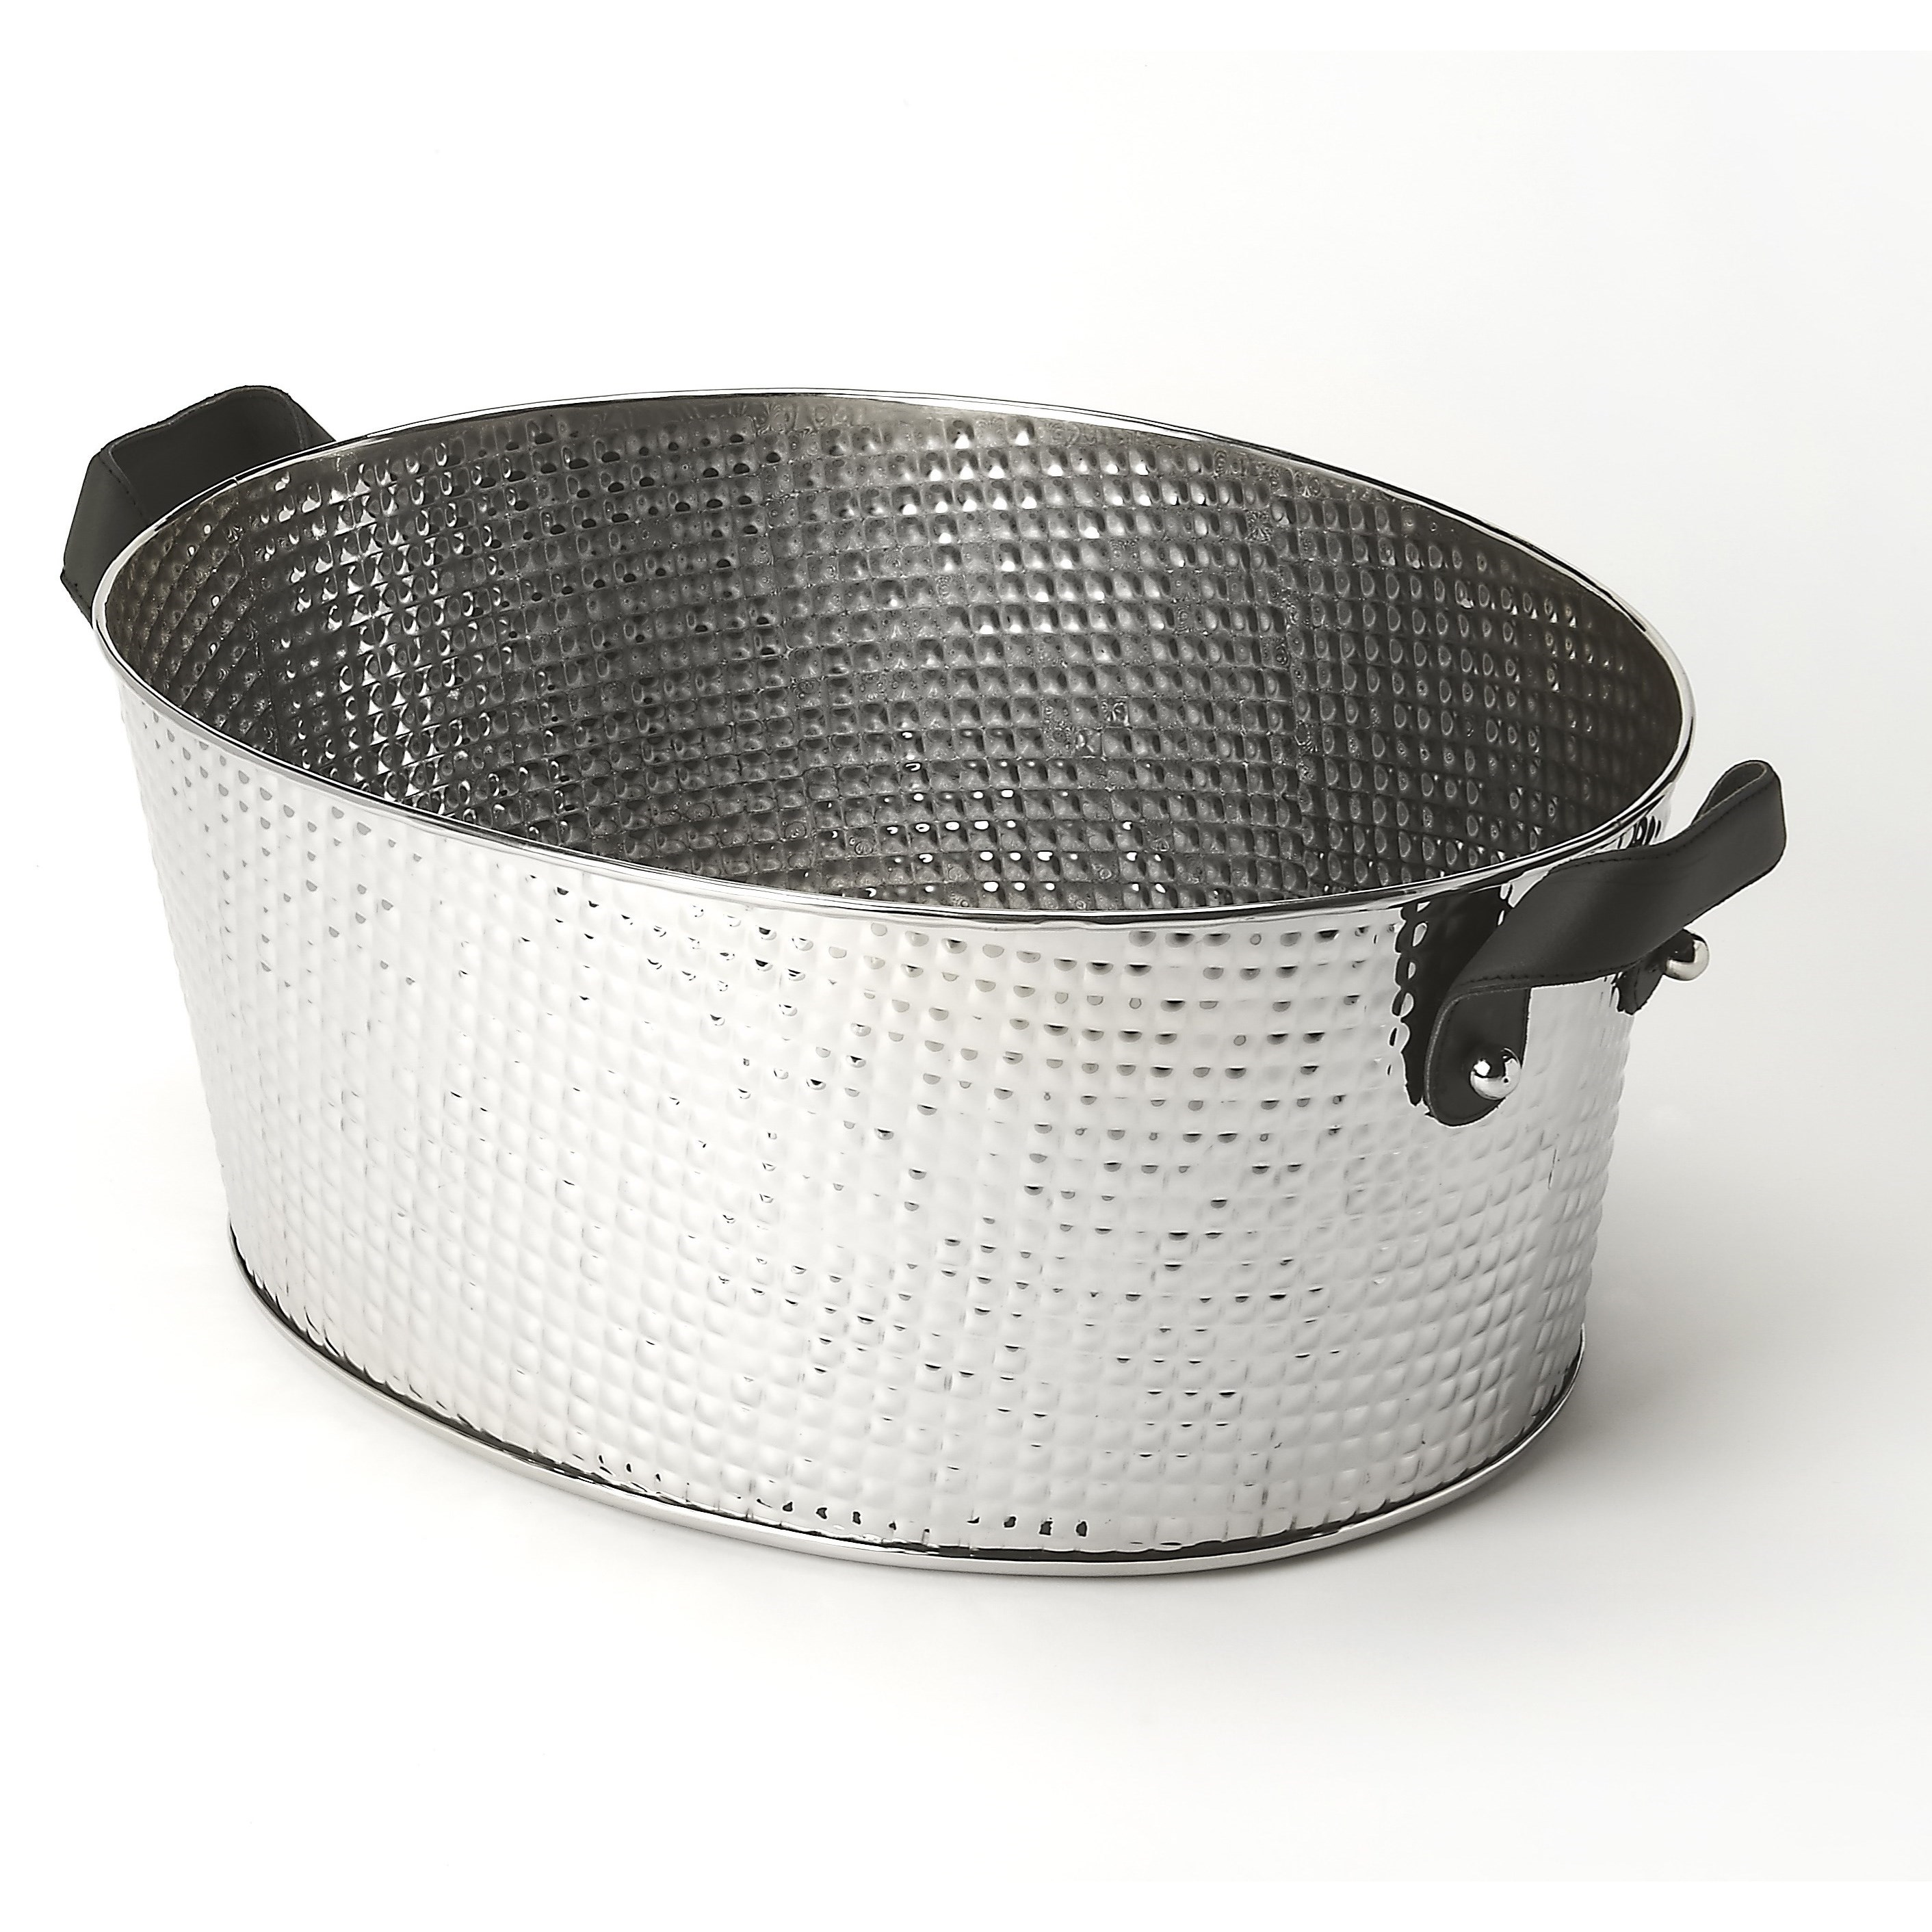 Butler Specialty Company Hors D'oeuvres Wine Bucket - Item Number: 6190016